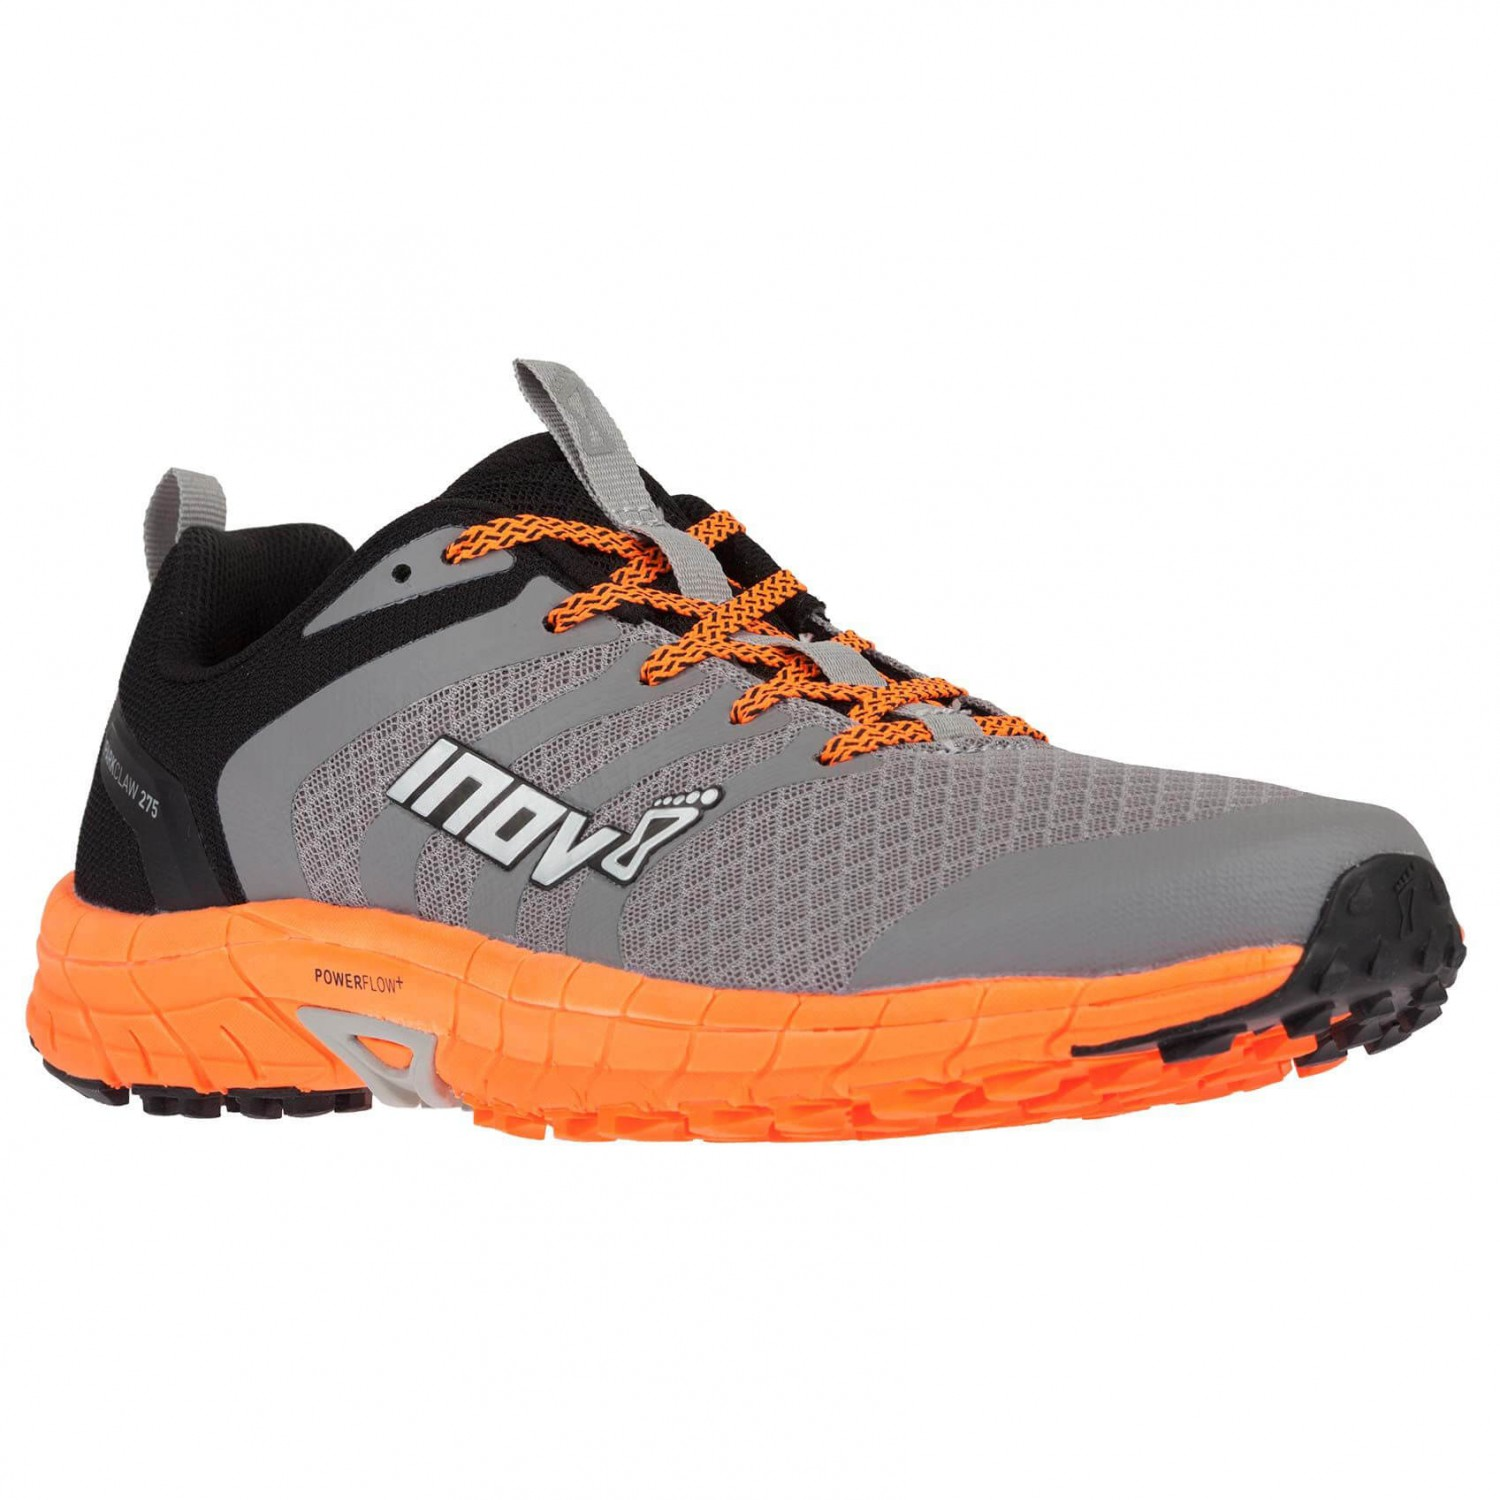 promo code cc76c 57abb Inov-8 - Parkclaw 275 - Running shoes - Grey / Orange | 7,5 (UK)